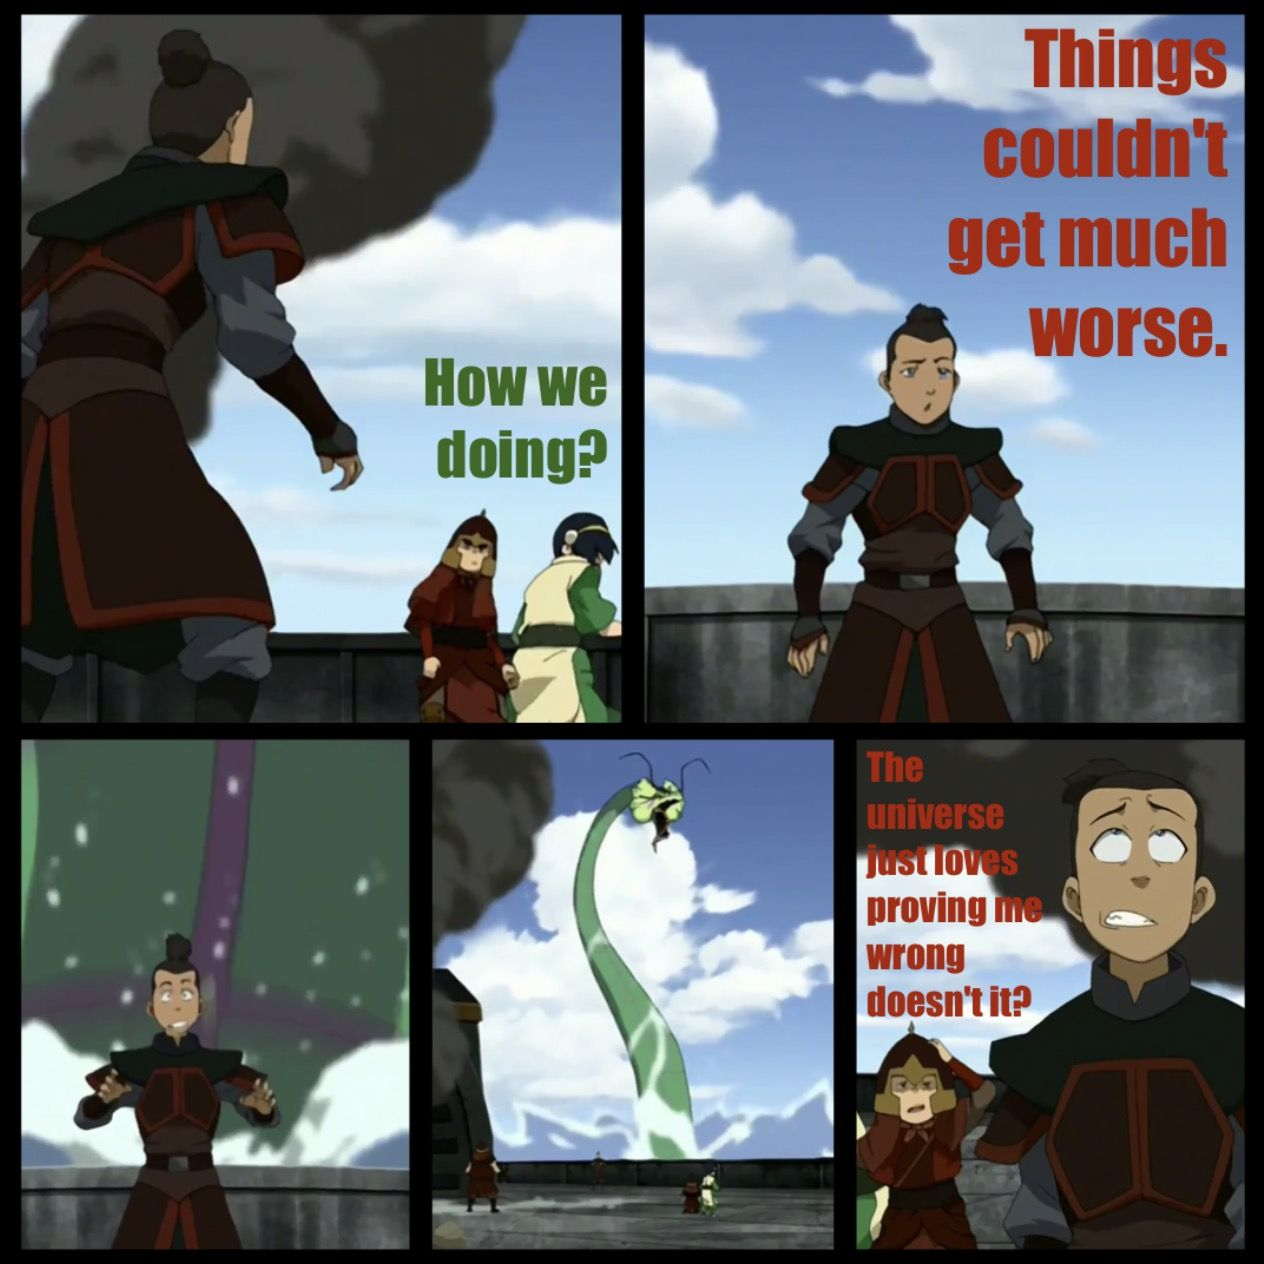 Avatar the last airbender. Another great scene